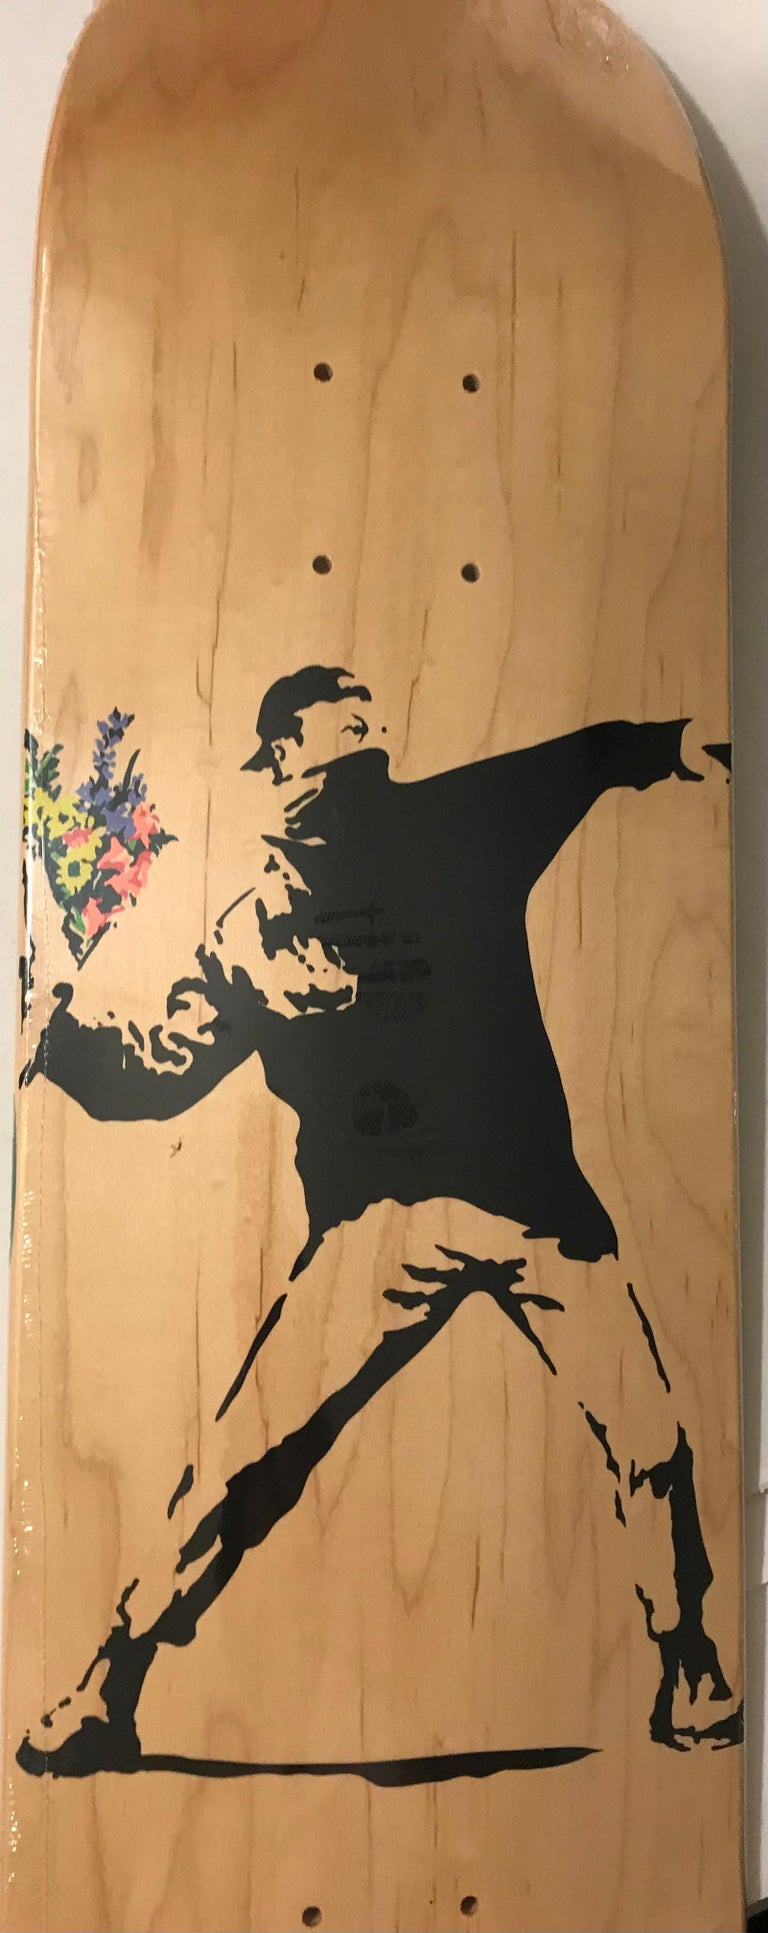 Banksy Flower Thrower Skate Deck Colored Edition, 2016 Screenprint in colors on skate deck 32 × 8 in 81.3 × 20.3 cm Edition of 1000